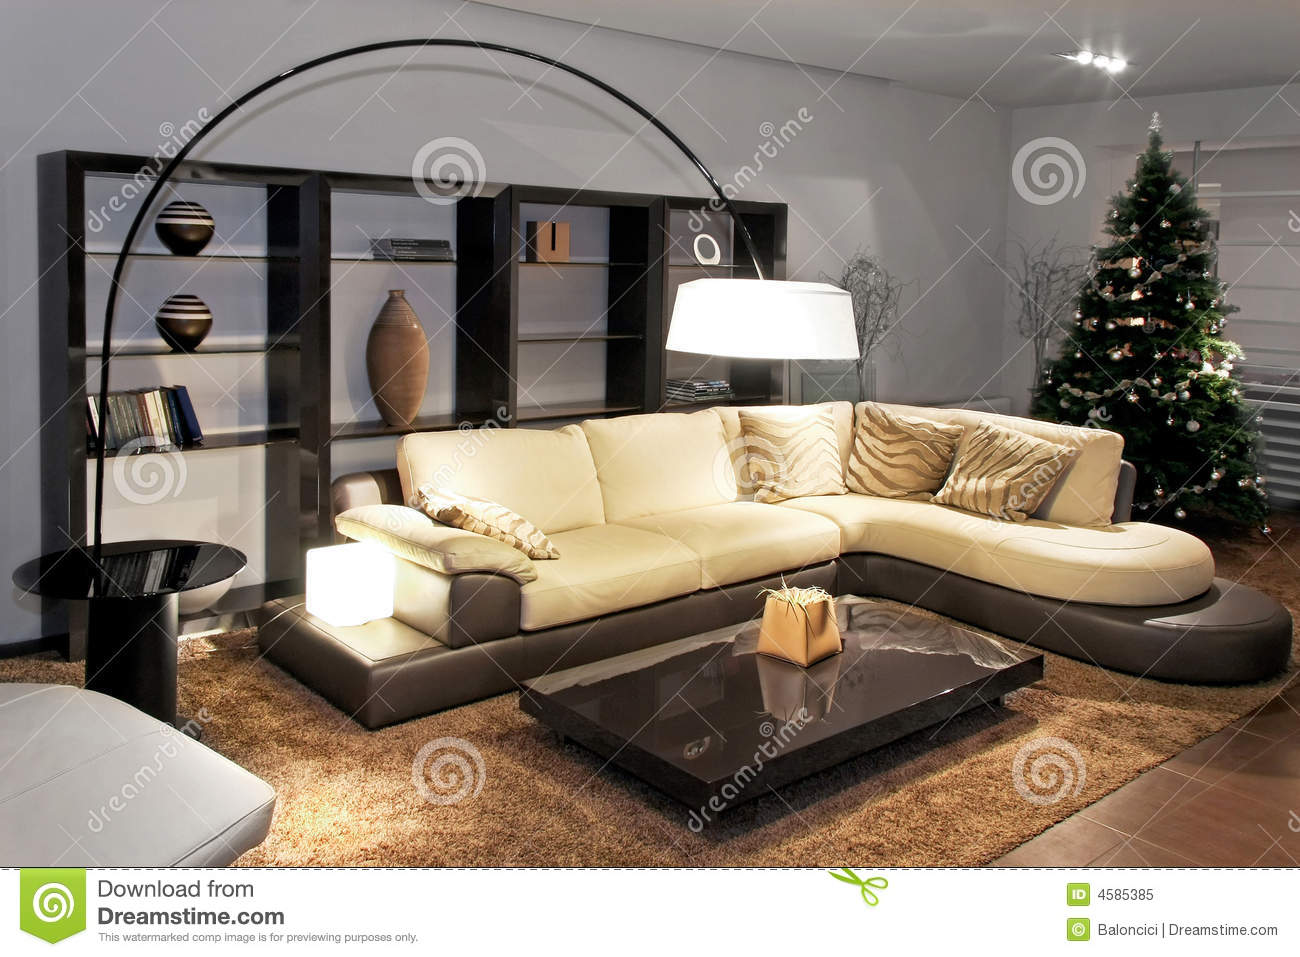 wohnzimmer modern lizenzfreies stockfoto bild 4585385. Black Bedroom Furniture Sets. Home Design Ideas